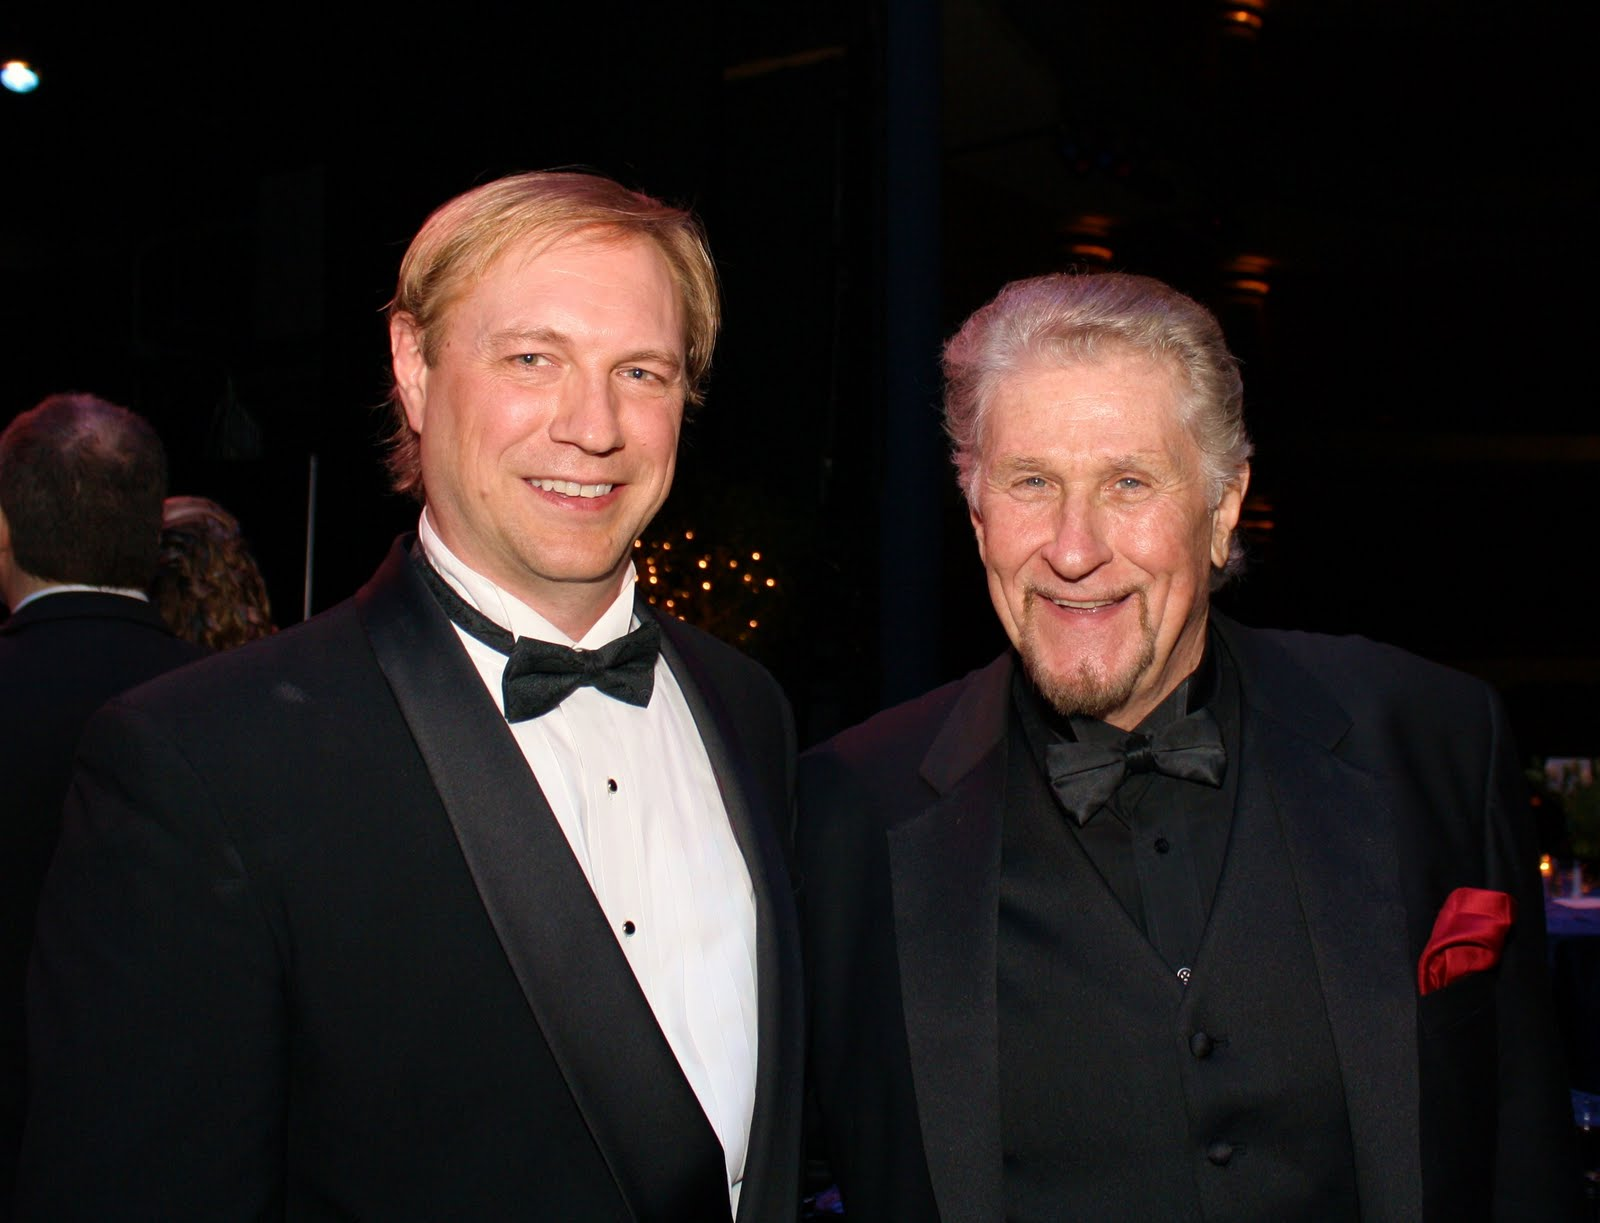 Mark Walters embracing one of his mentors, the legendary Sherrill Milnes.